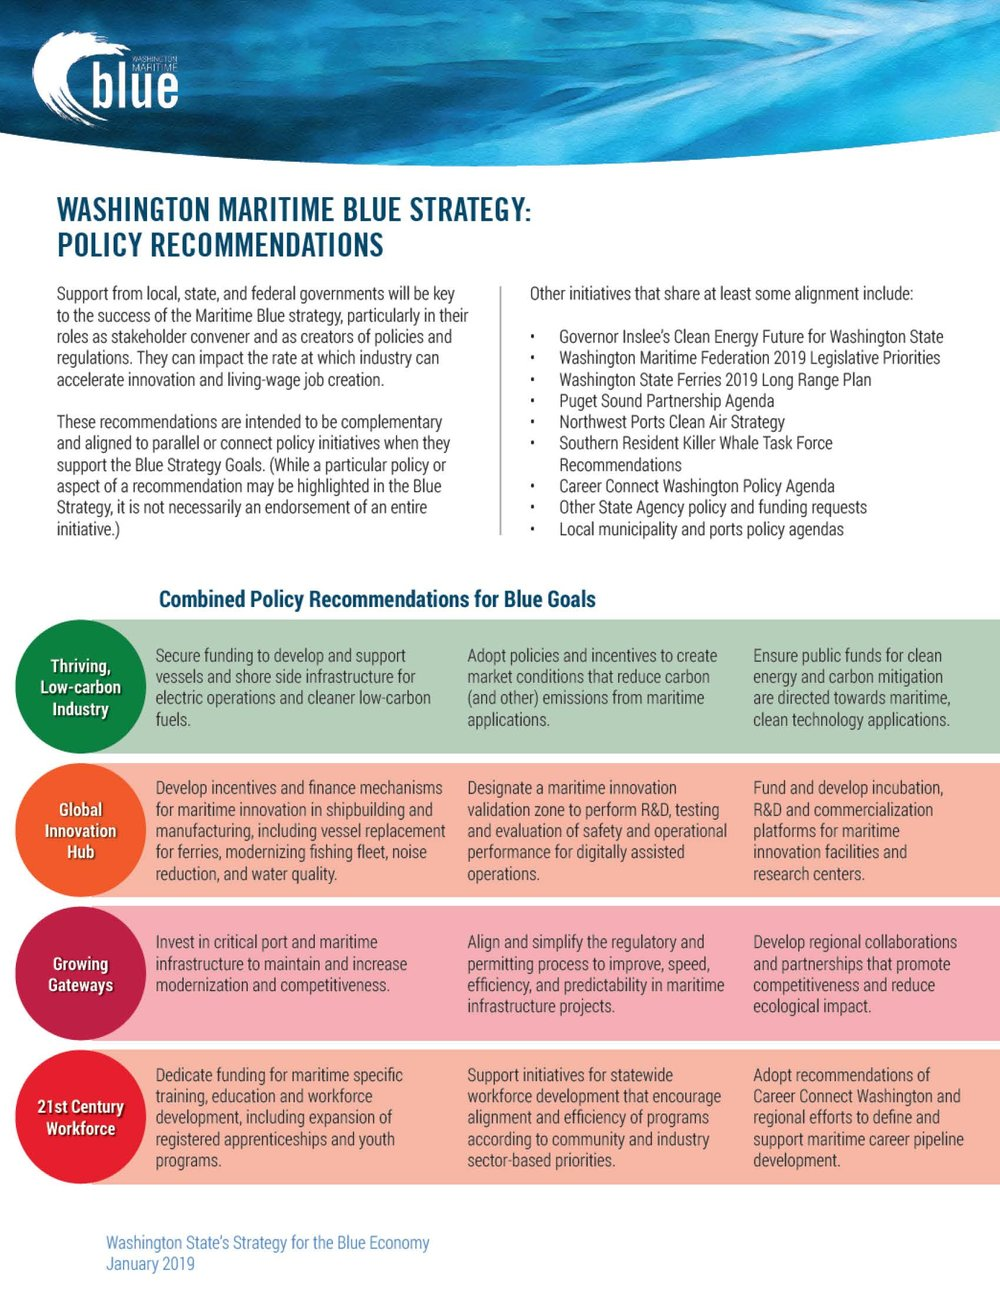 MaritimeBlue_Main Report_Final_1-4-19_Page_16.jpg